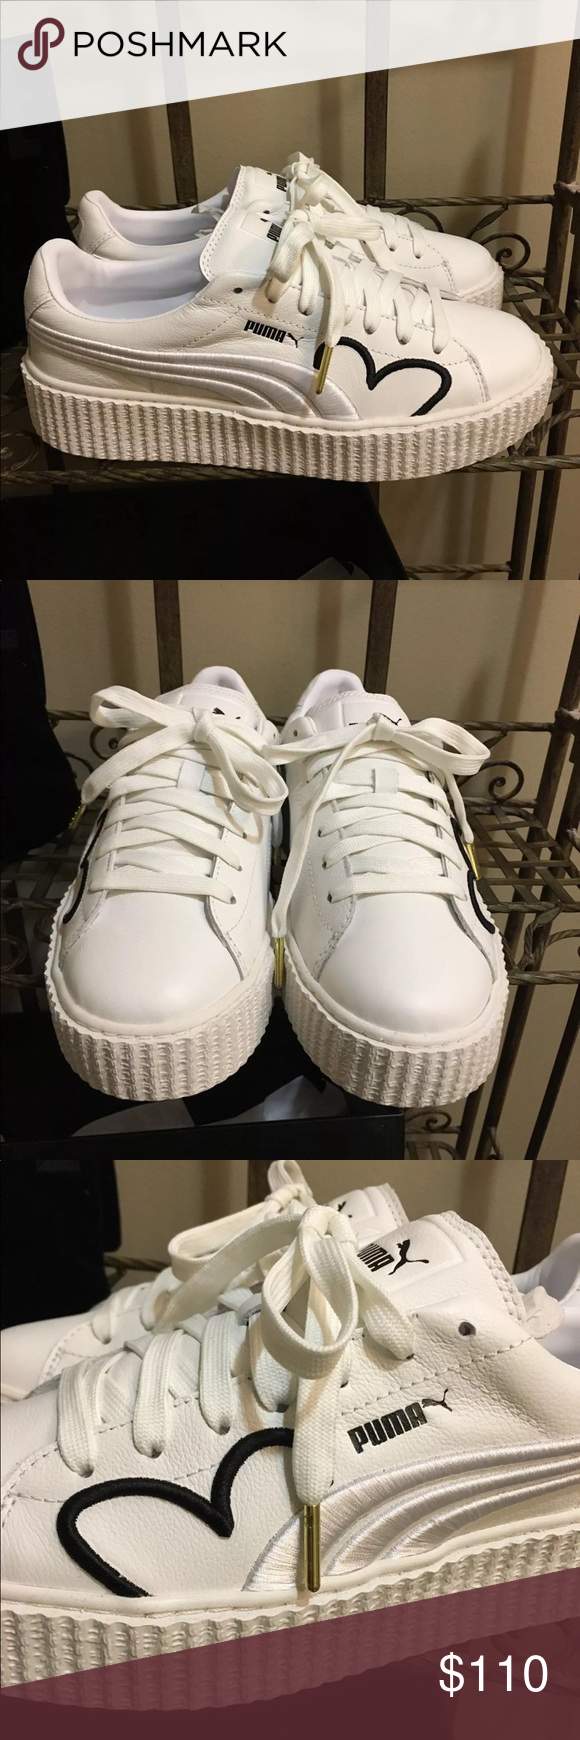 best sneakers ea5ee 55313 Puma Fenty Clara Lionel Creepers Brand new in box. Size 9.5 ...